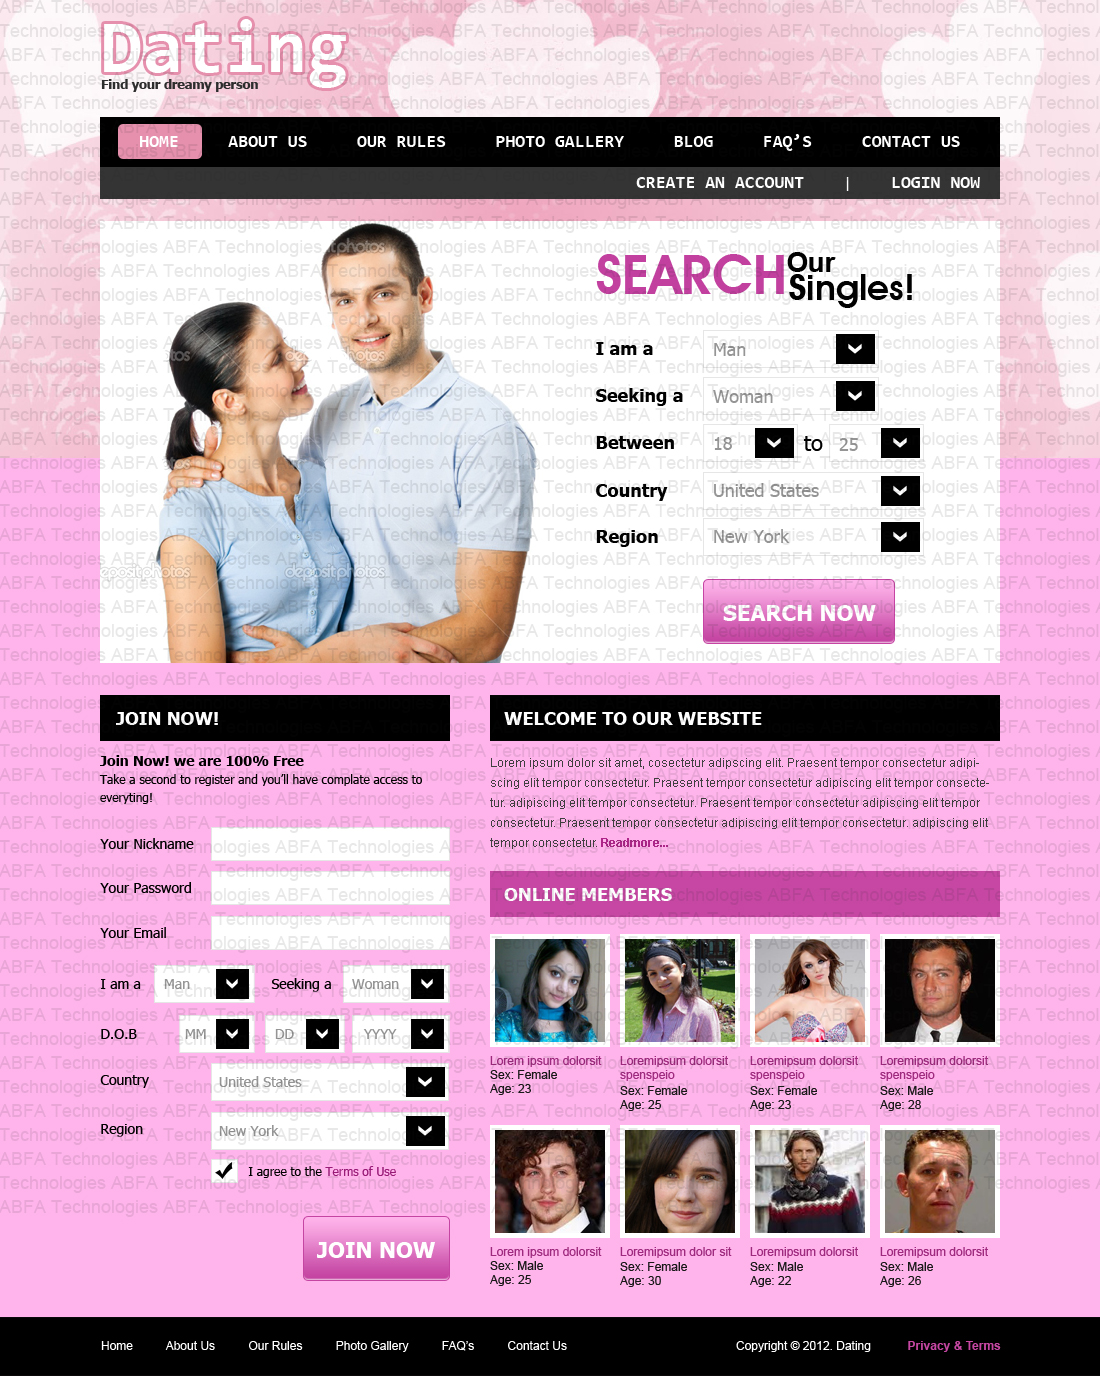 Rizwan saqib web design portfolio february 2012 for Dating site about me template